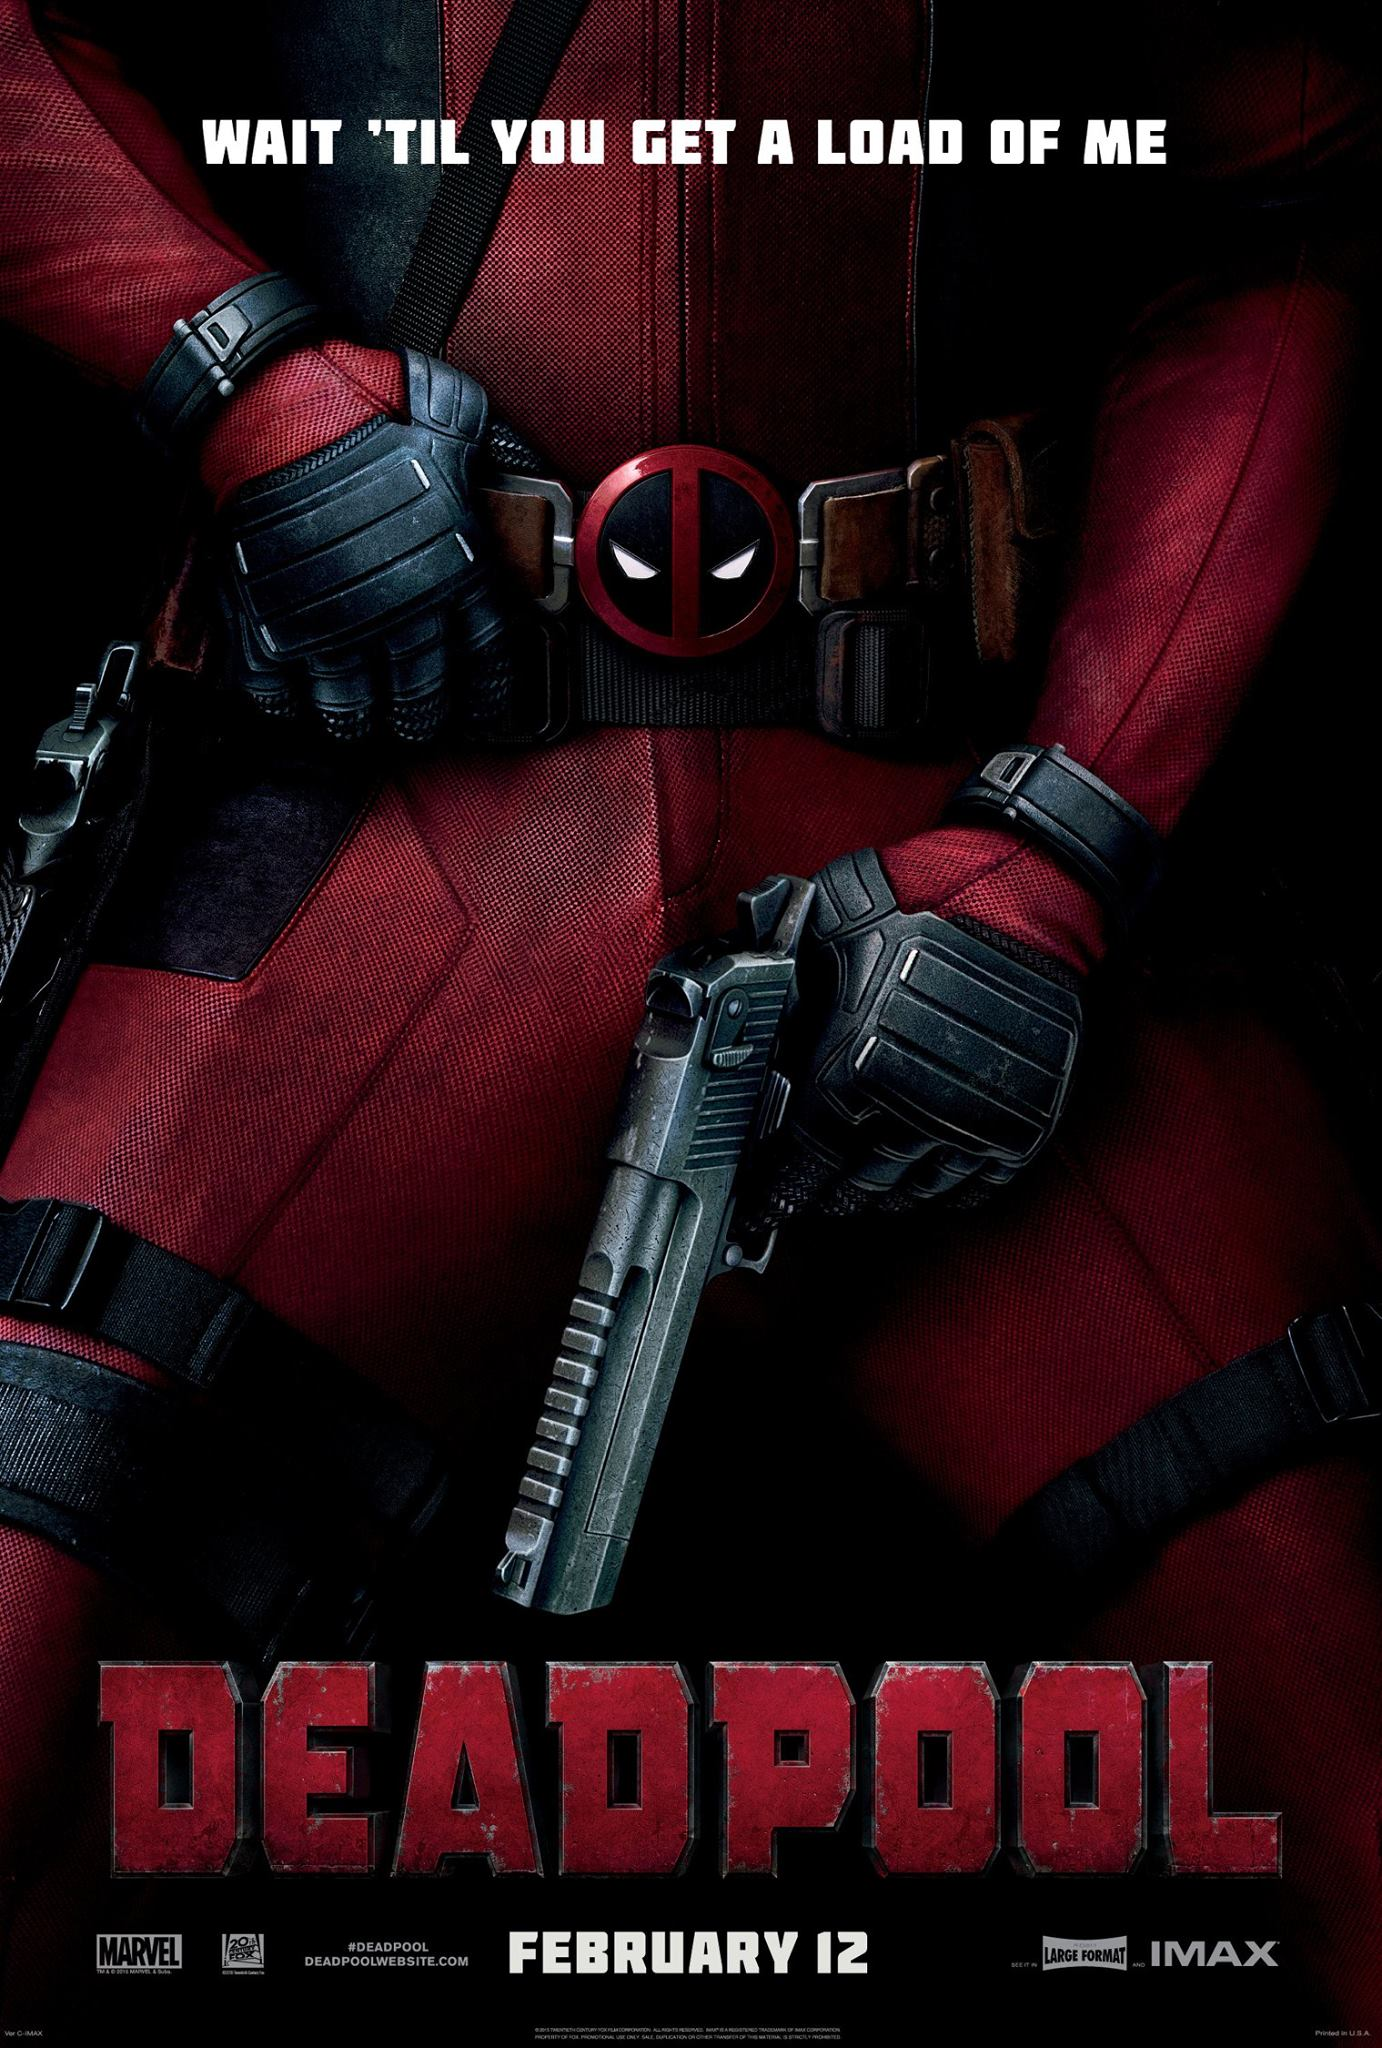 2nd day of Deadpool